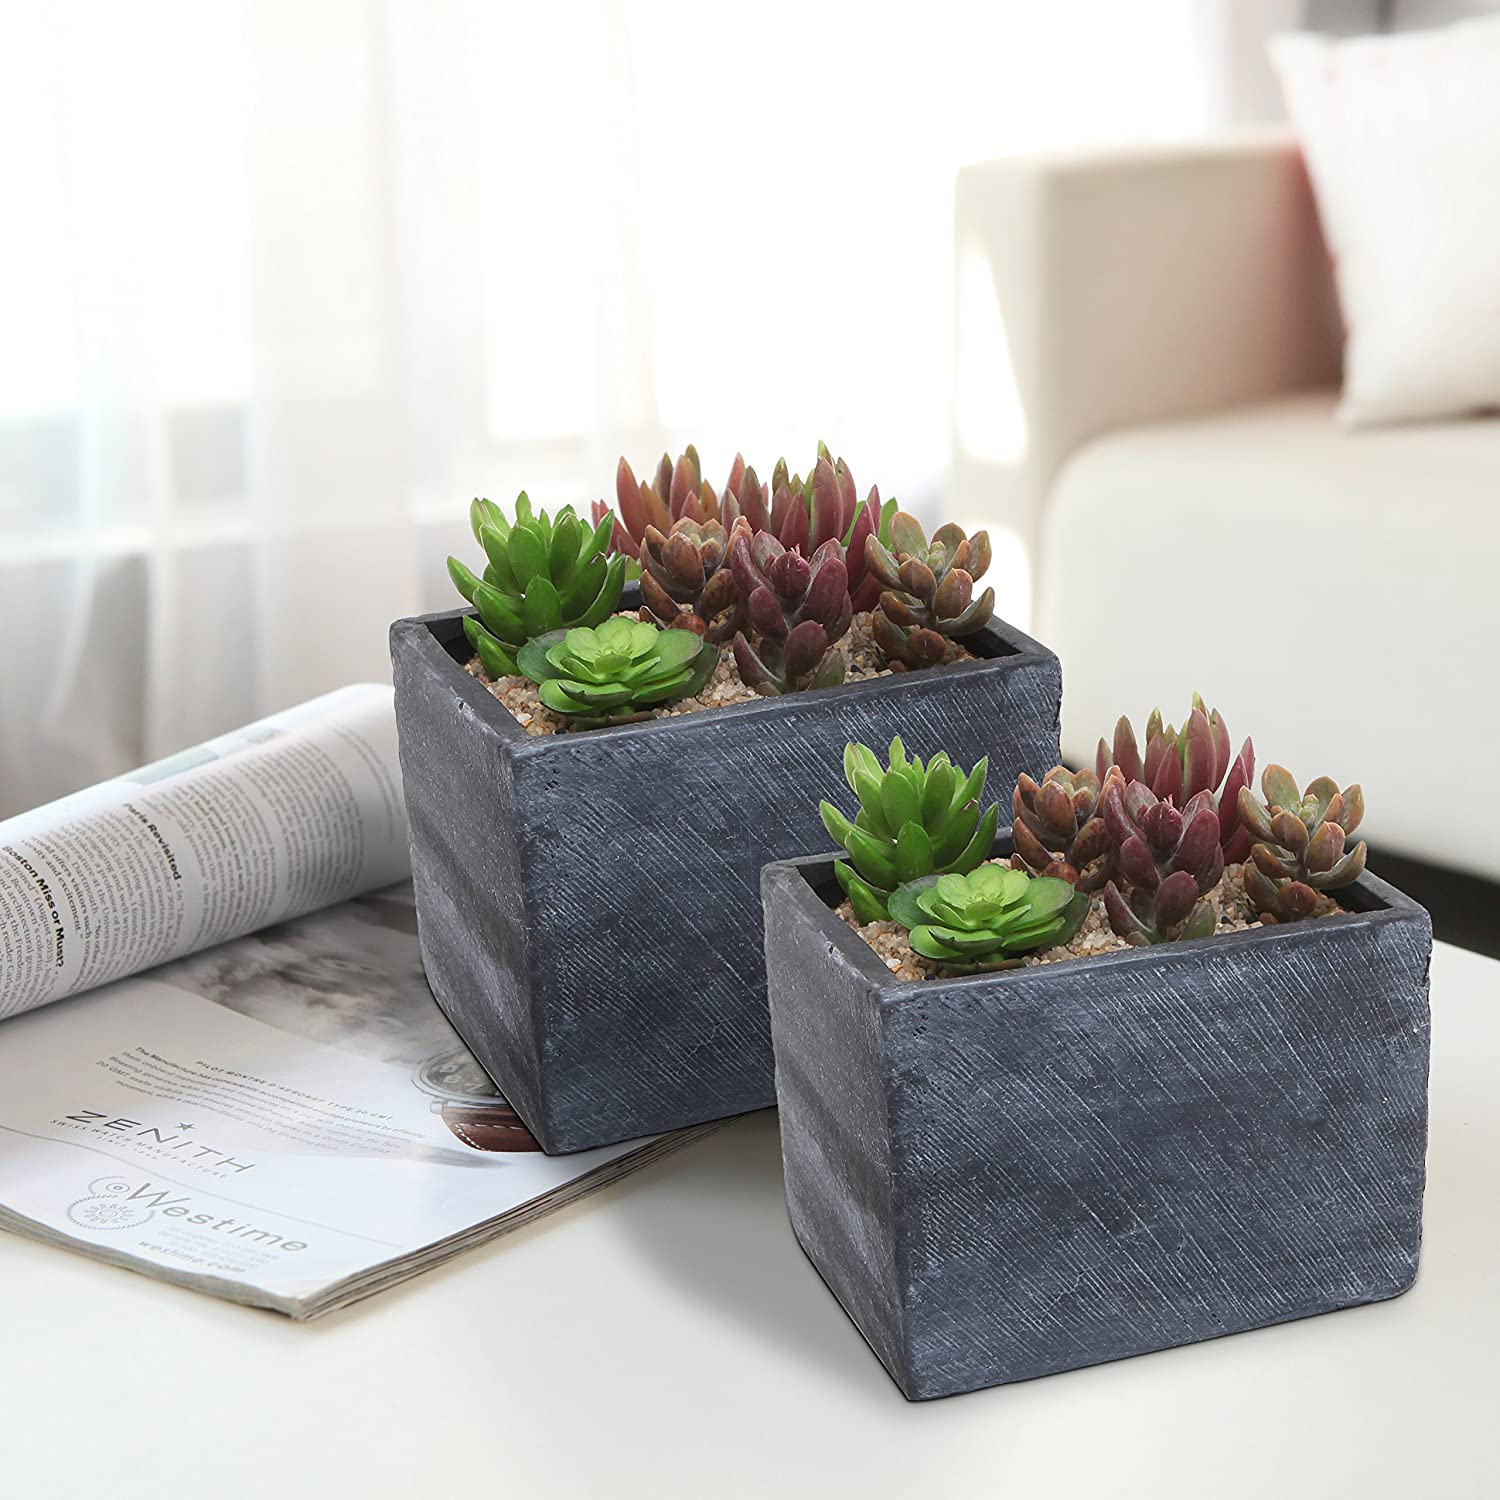 Small Herb Pots Part - 25: Amazon.com: MyGift 6 Inch Terracotta Ceramic Herb Pots, Rectangular  Succulent Planter Containers, Set Of 2, Gray: Patio, Lawn U0026 Garden